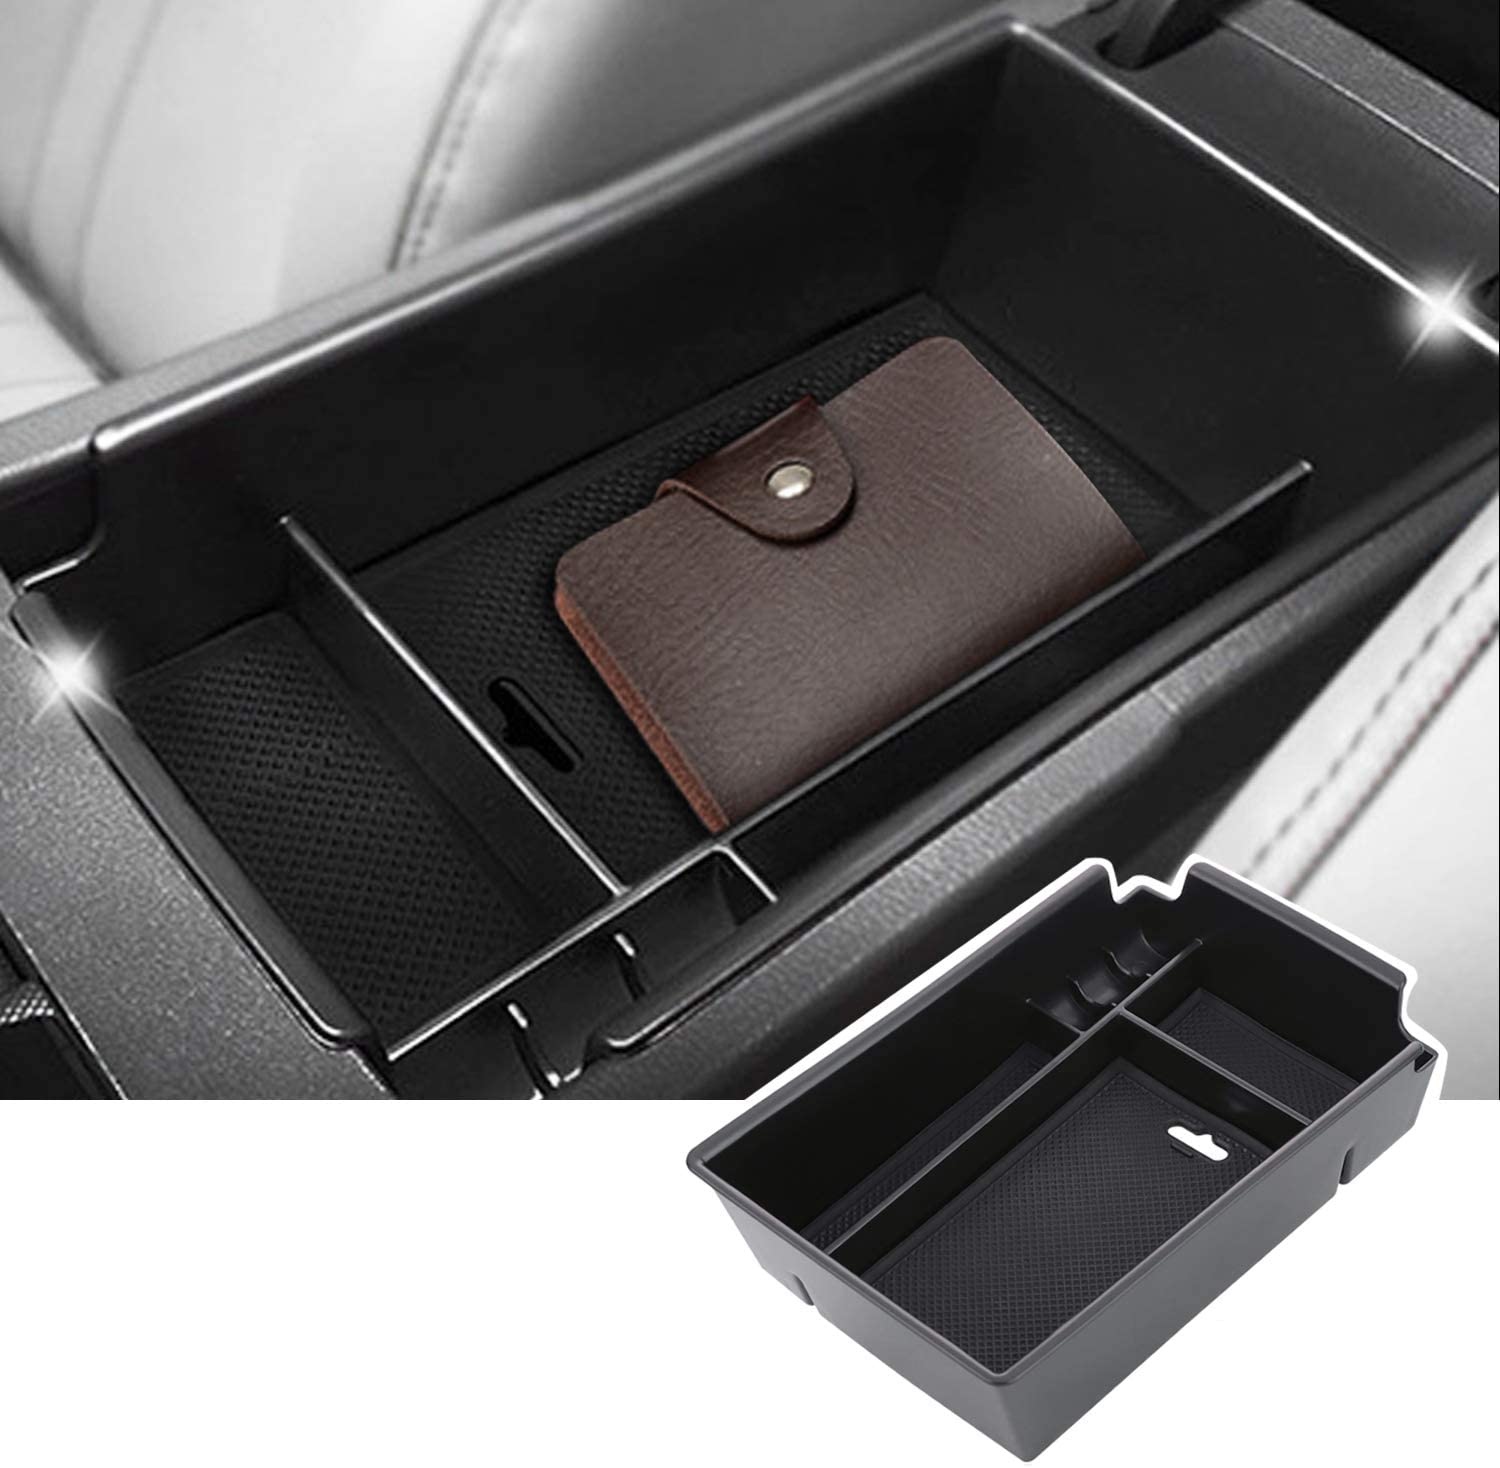 SKTU Center Console Organizer Compatible with 2020 2021 Sonata Accessories Insert ABS Black Materials Tray Armrest Secondary Storage Box with Coin and Glass Holder White